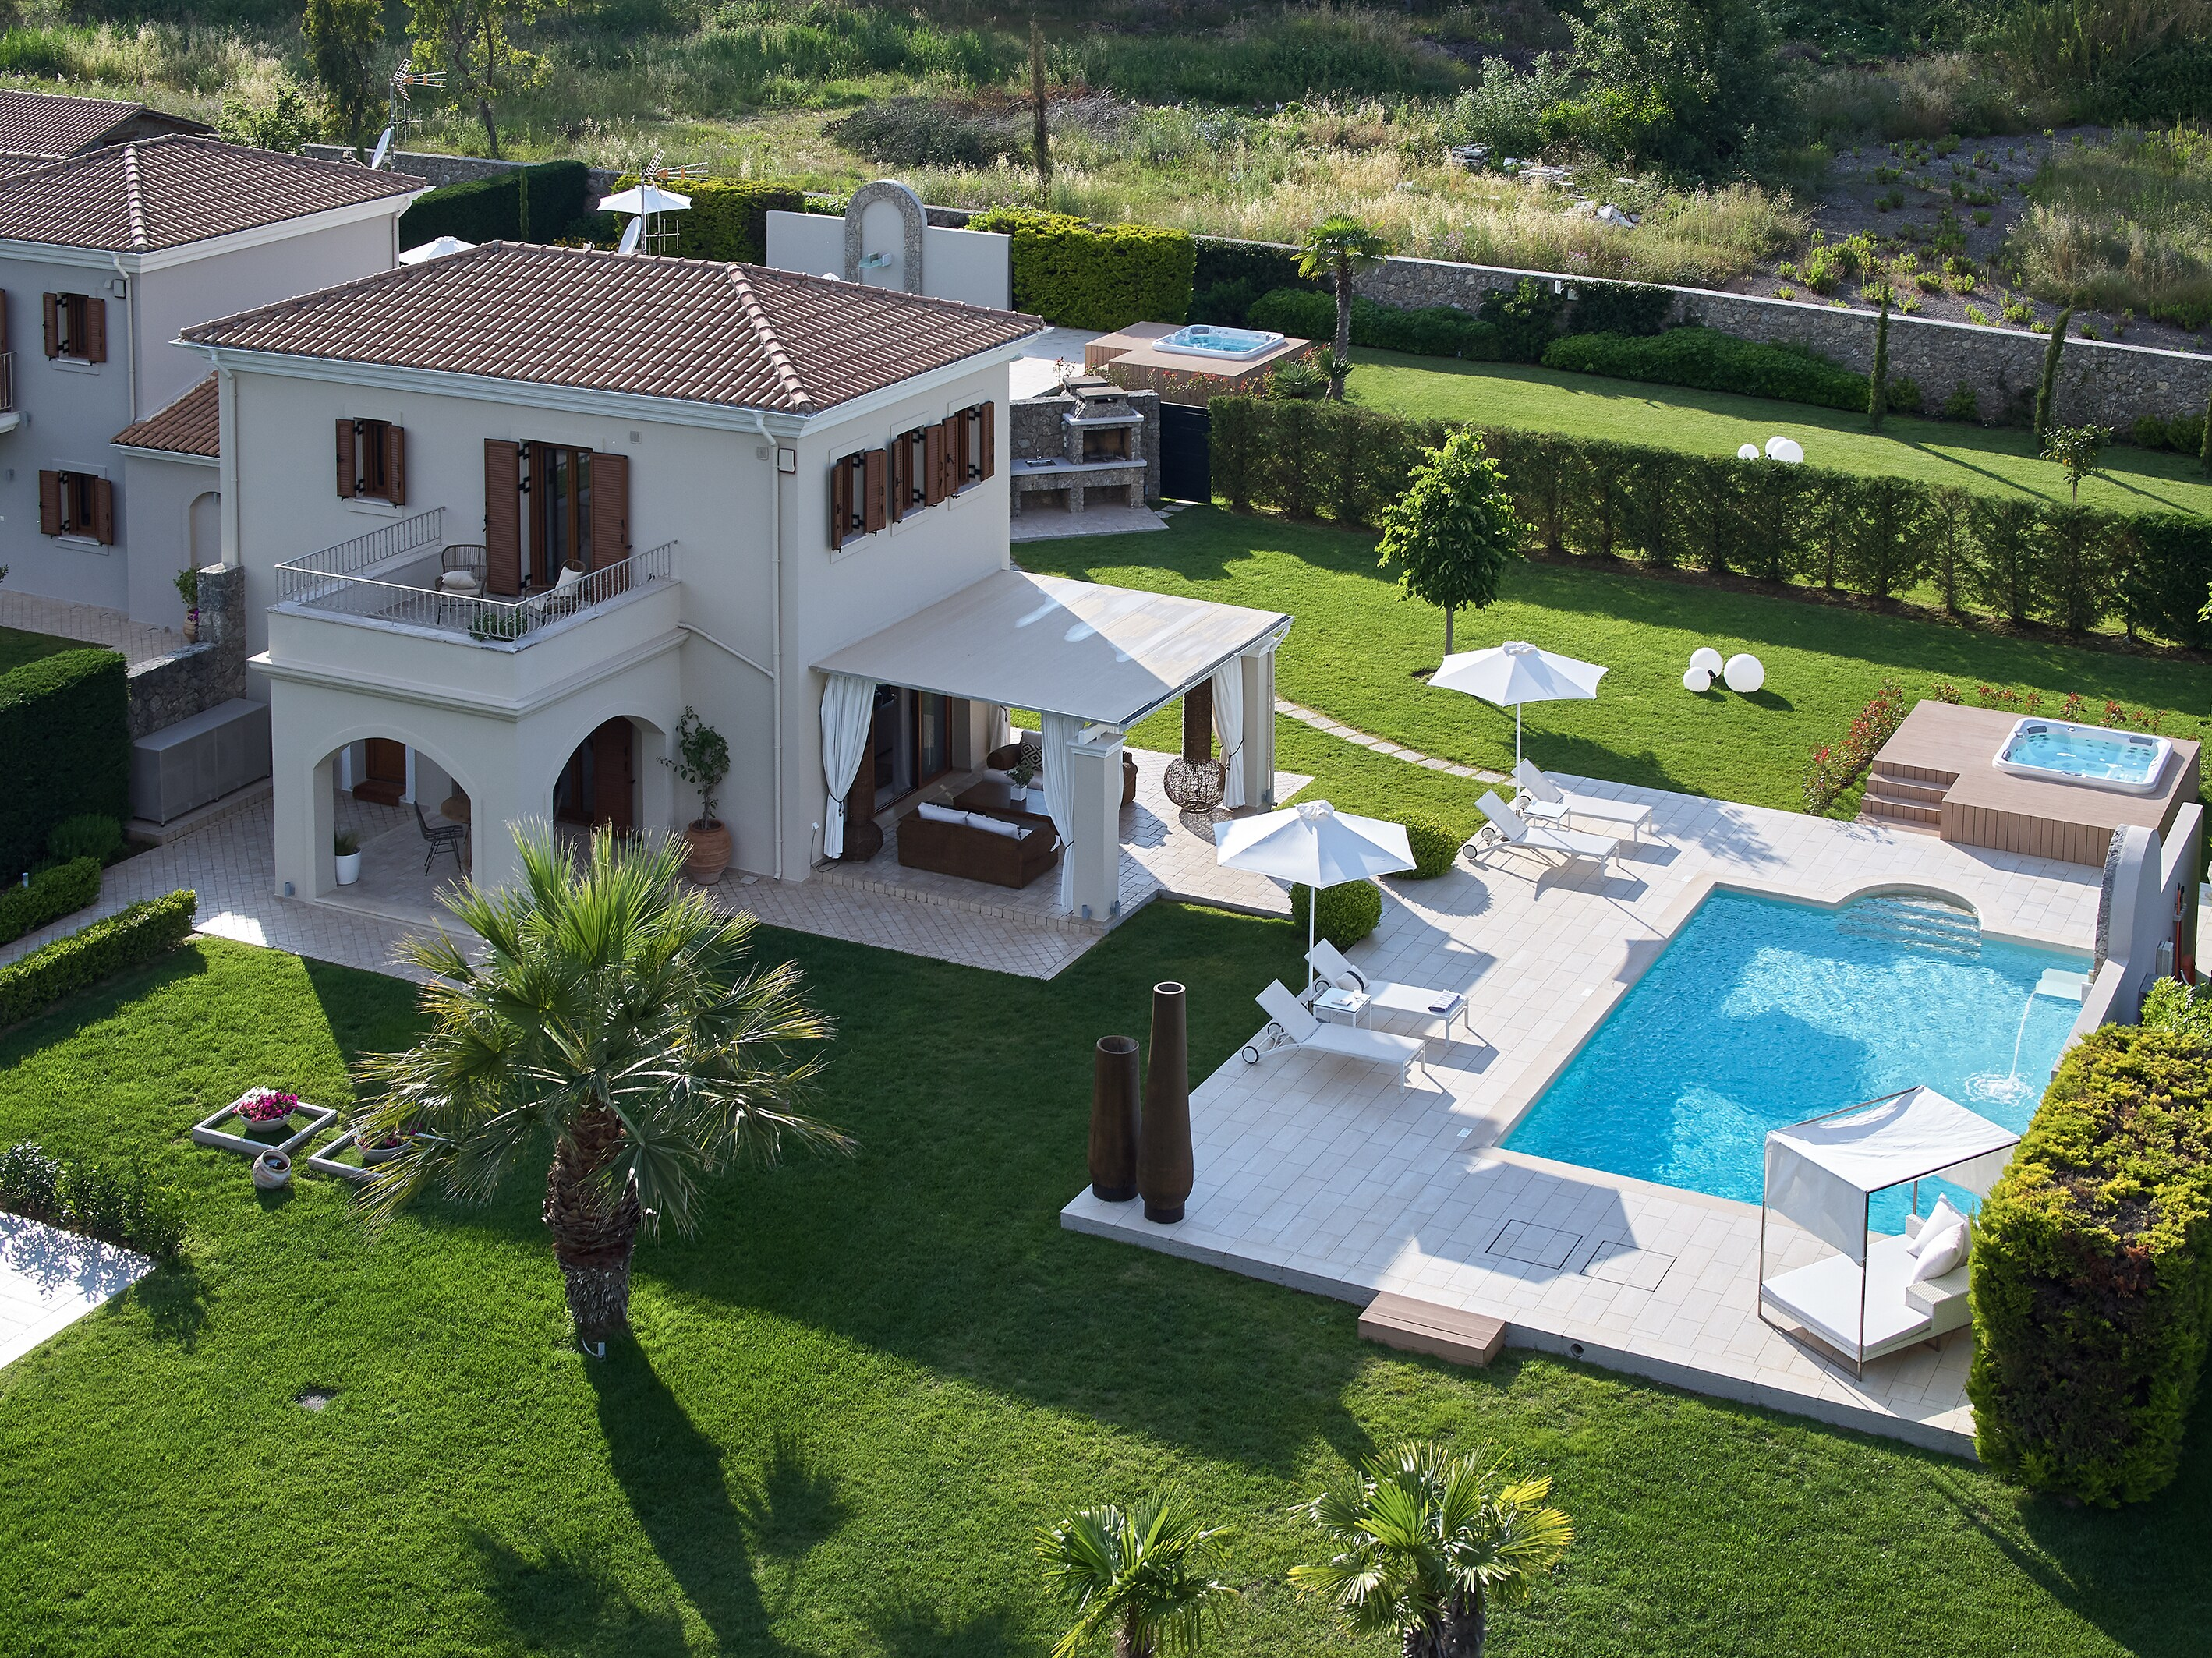 Modern 2 bedroom villa with private pool and Jacuzzi